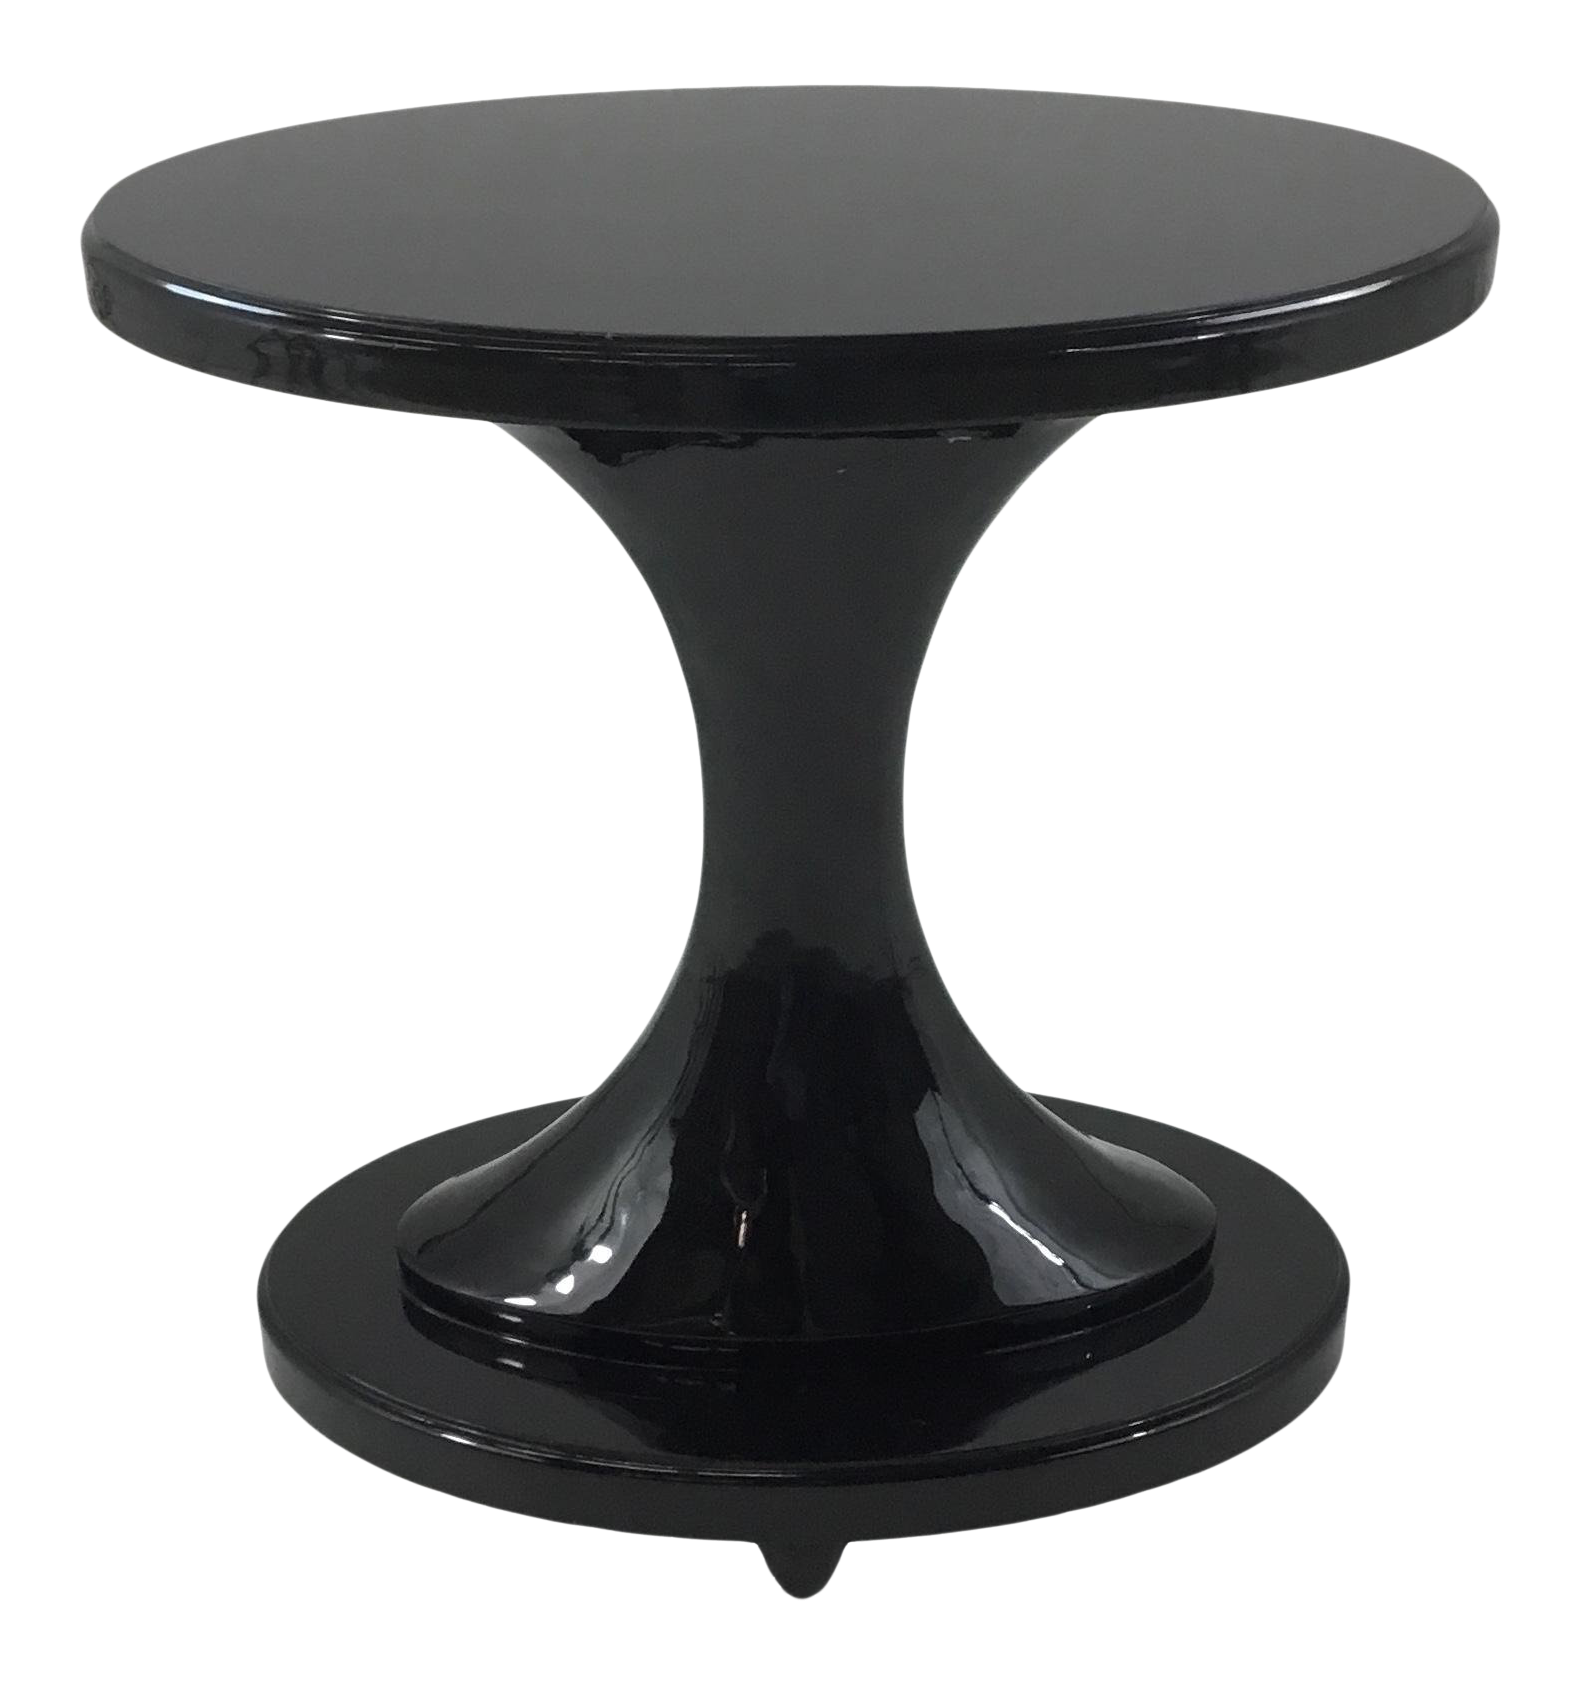 vangaurd black lacquer oval accent table chairish outdoor bench clearance inch high end beach themed furniture coffee ideas iron round mirrored bedroom dressers tablecloths and